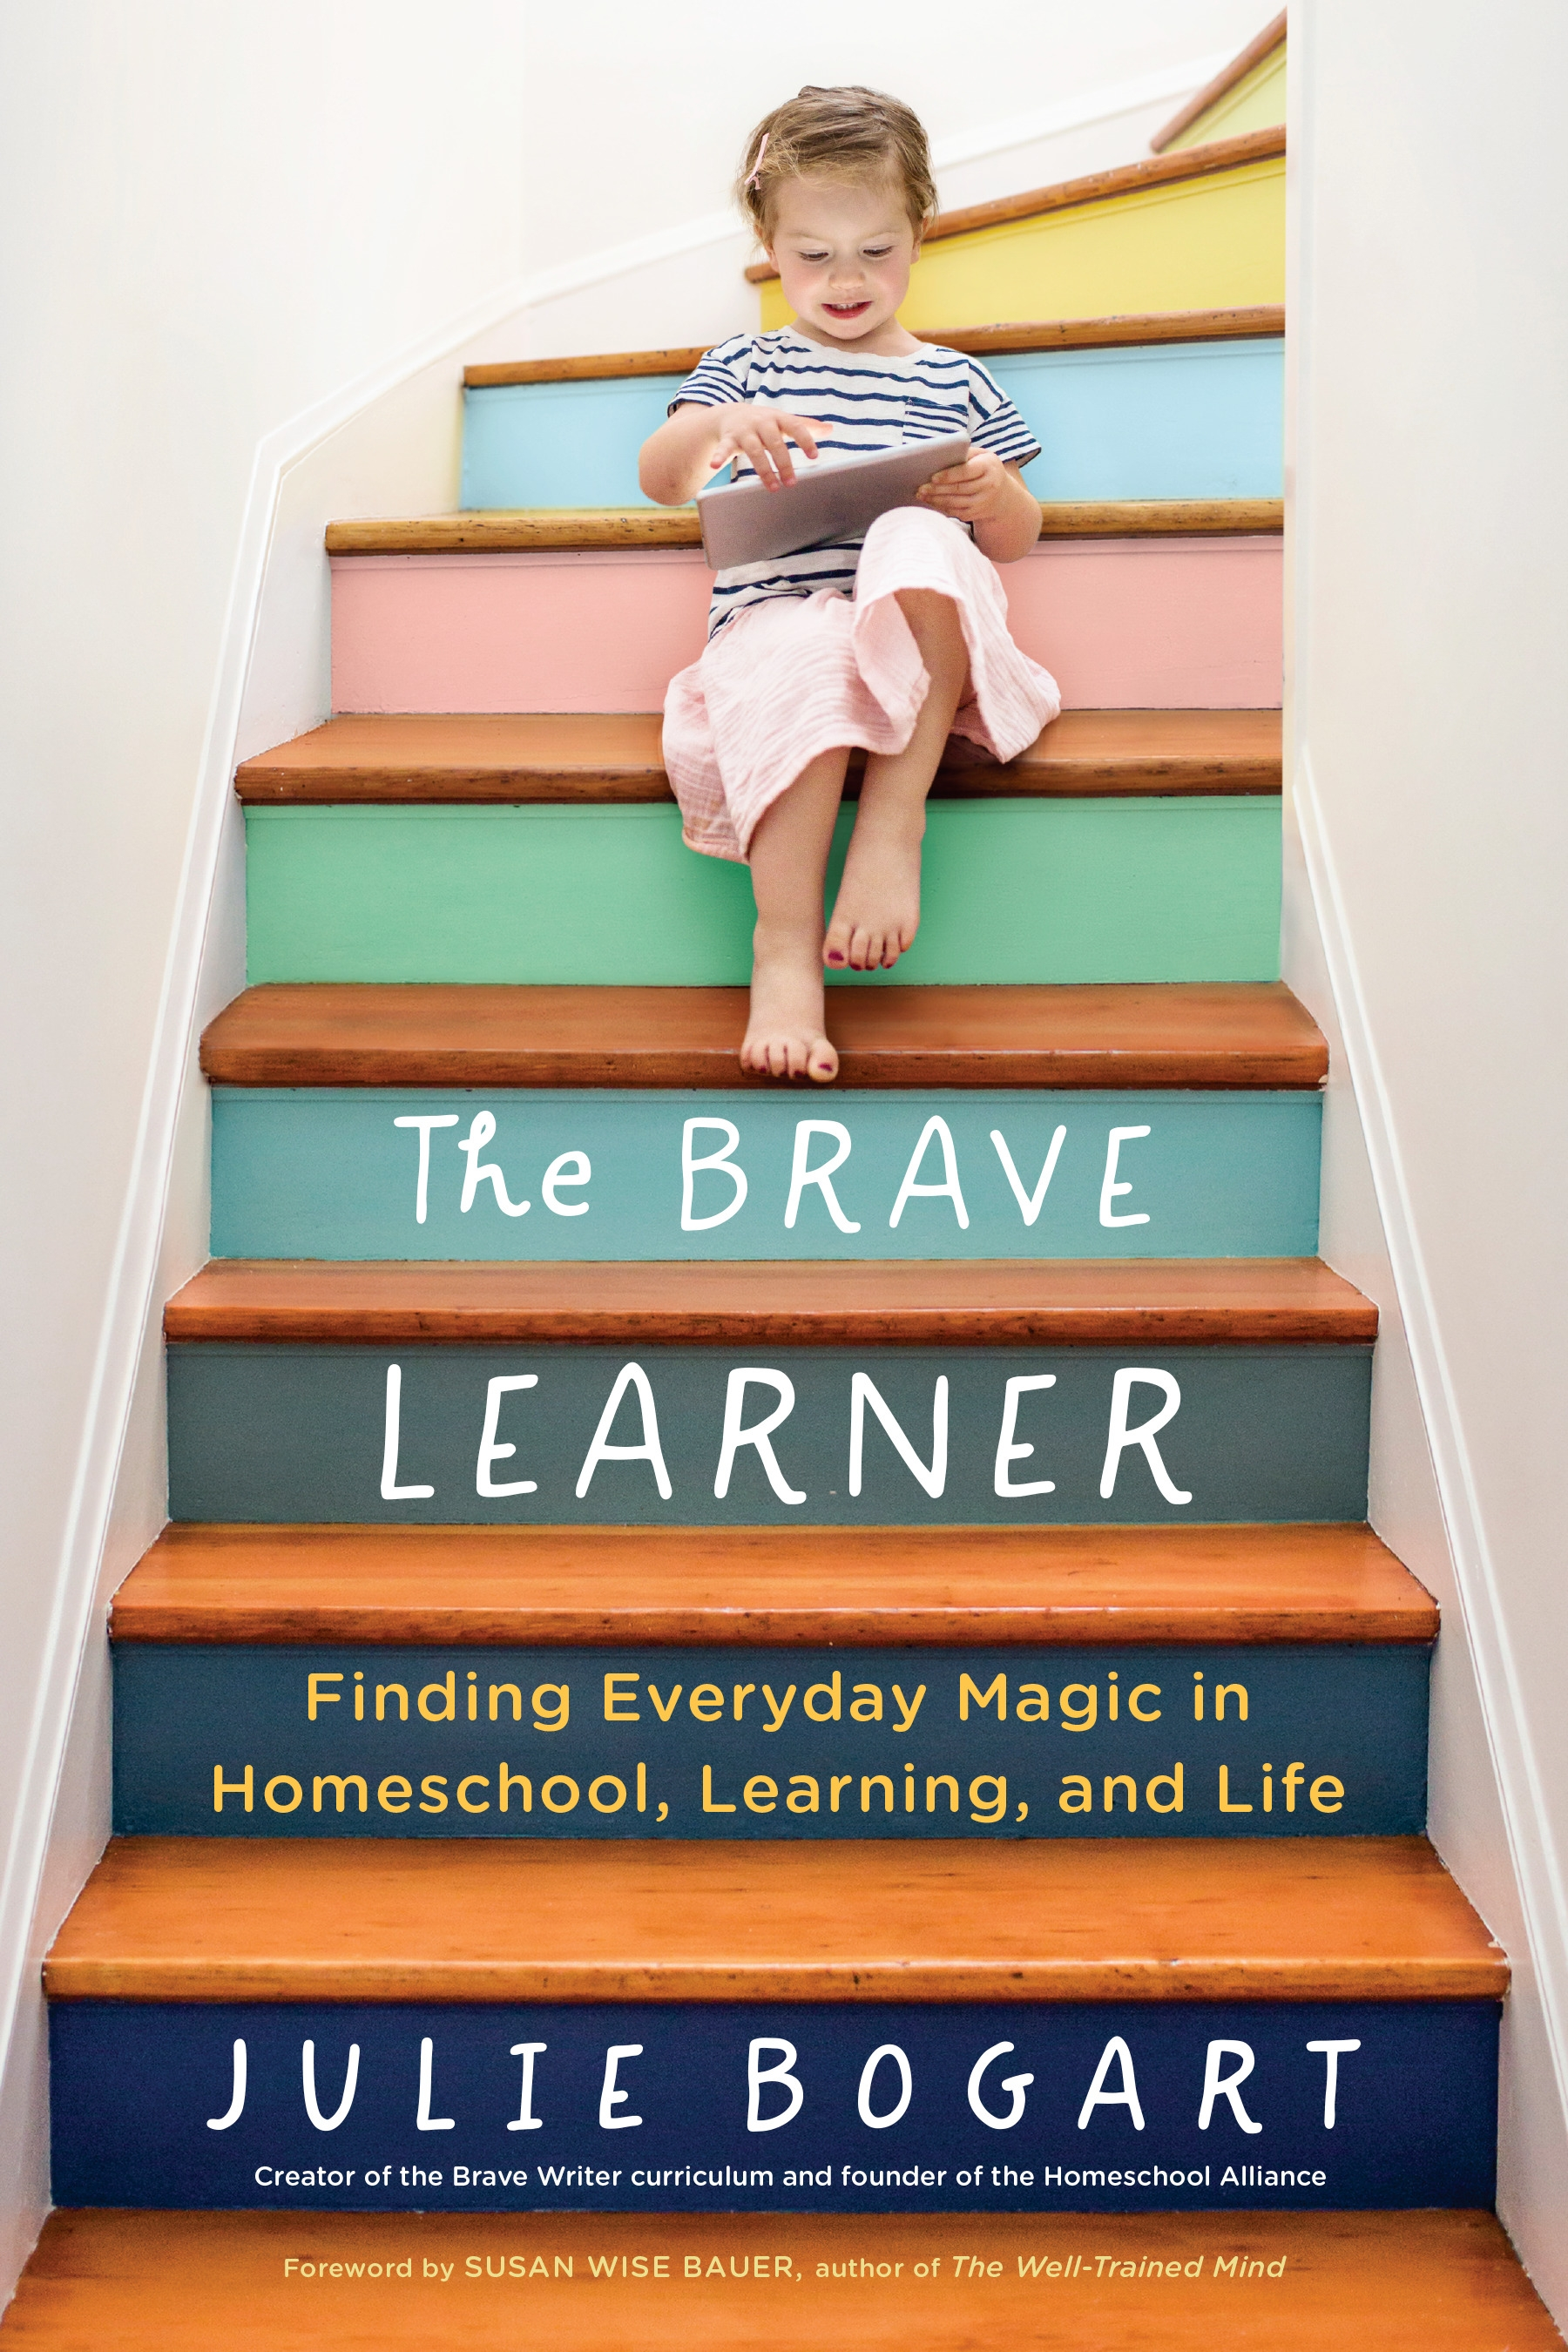 The Brave Learner: Finding Everyday Magic in Homeschool, Learning, and Life by Julie Bogart, ISBN: 9780143133223